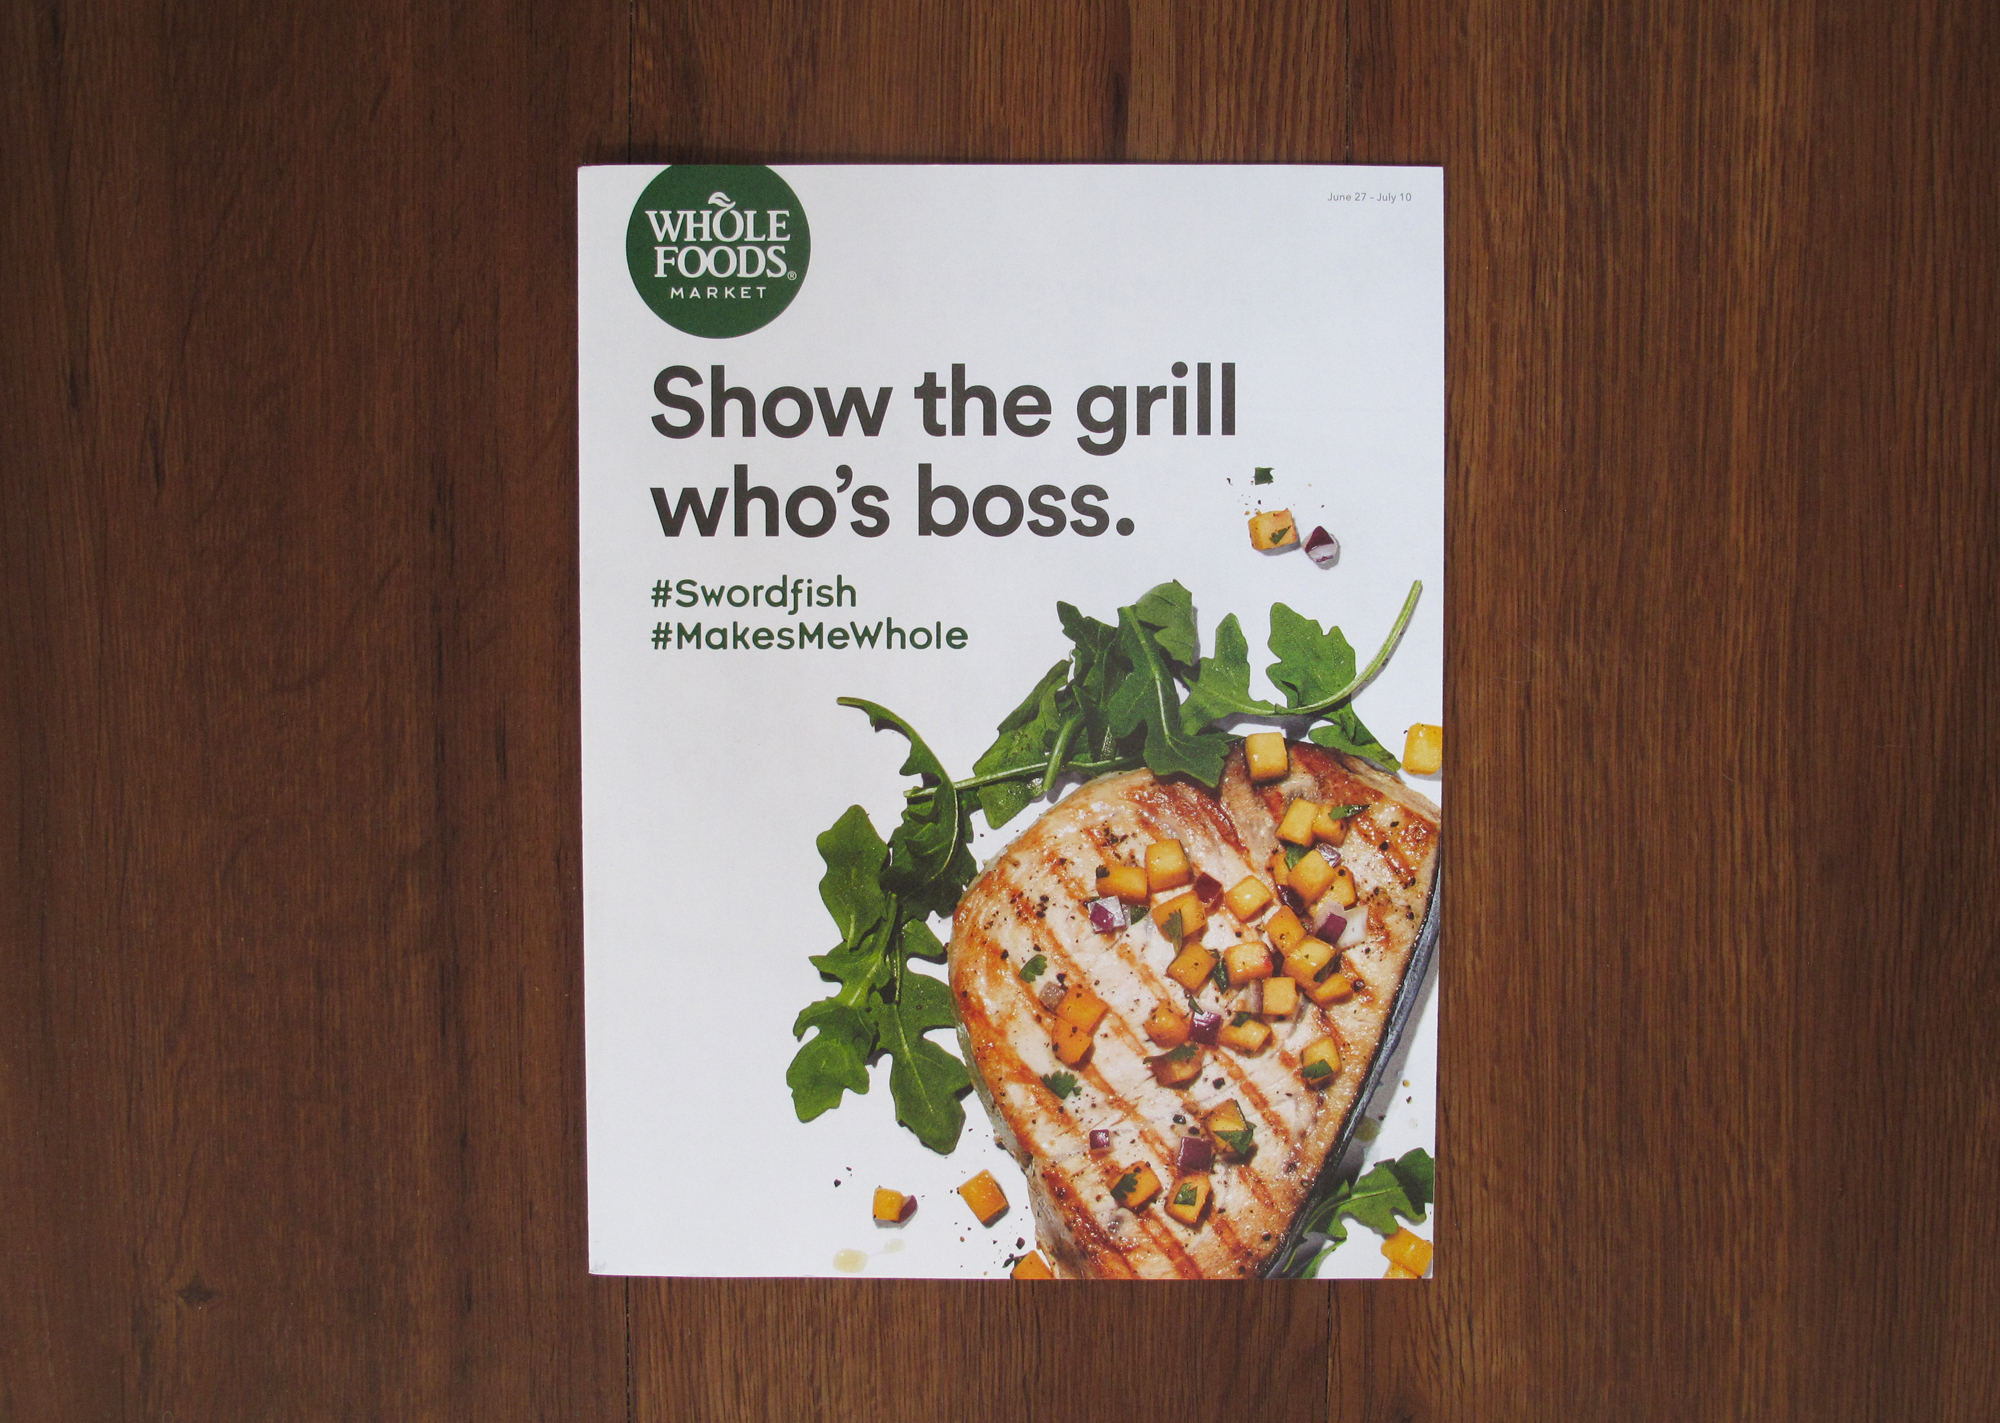 Whole_Foods_Market_direct_Maile_laura_guard2